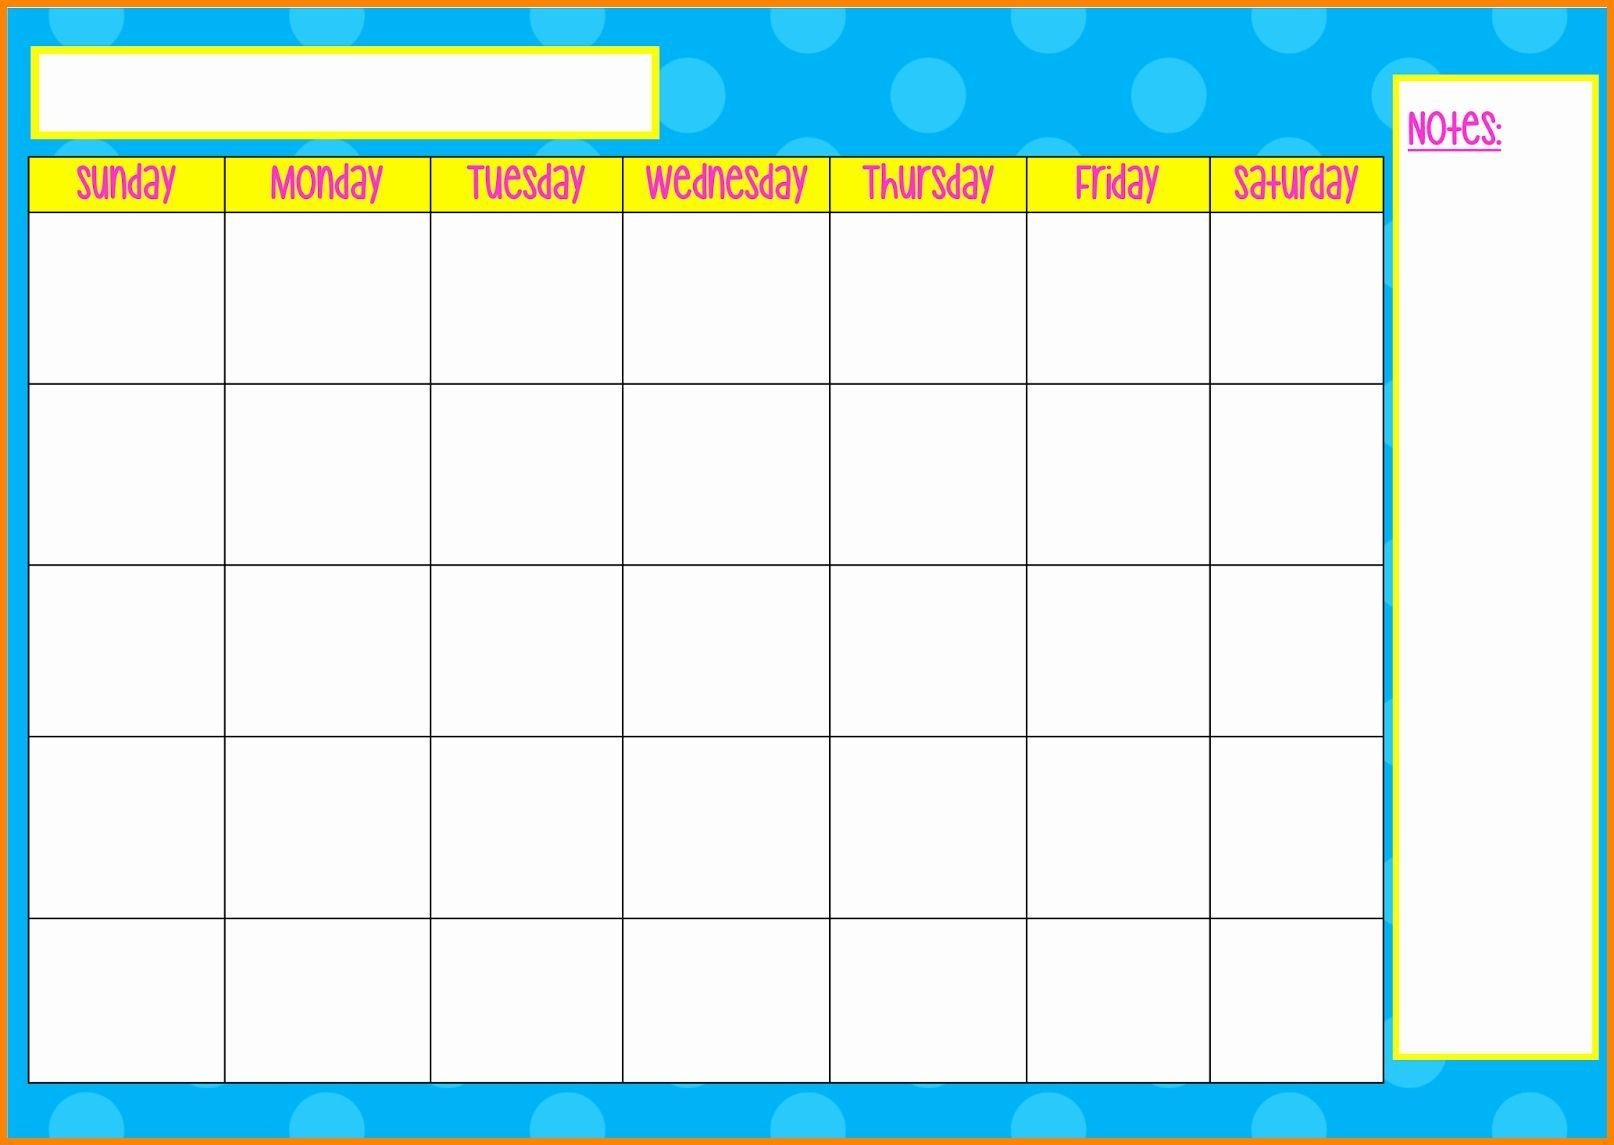 How To Monday Through Friday Calendar Word | Get Your Mon – Fri Calender Layout Download